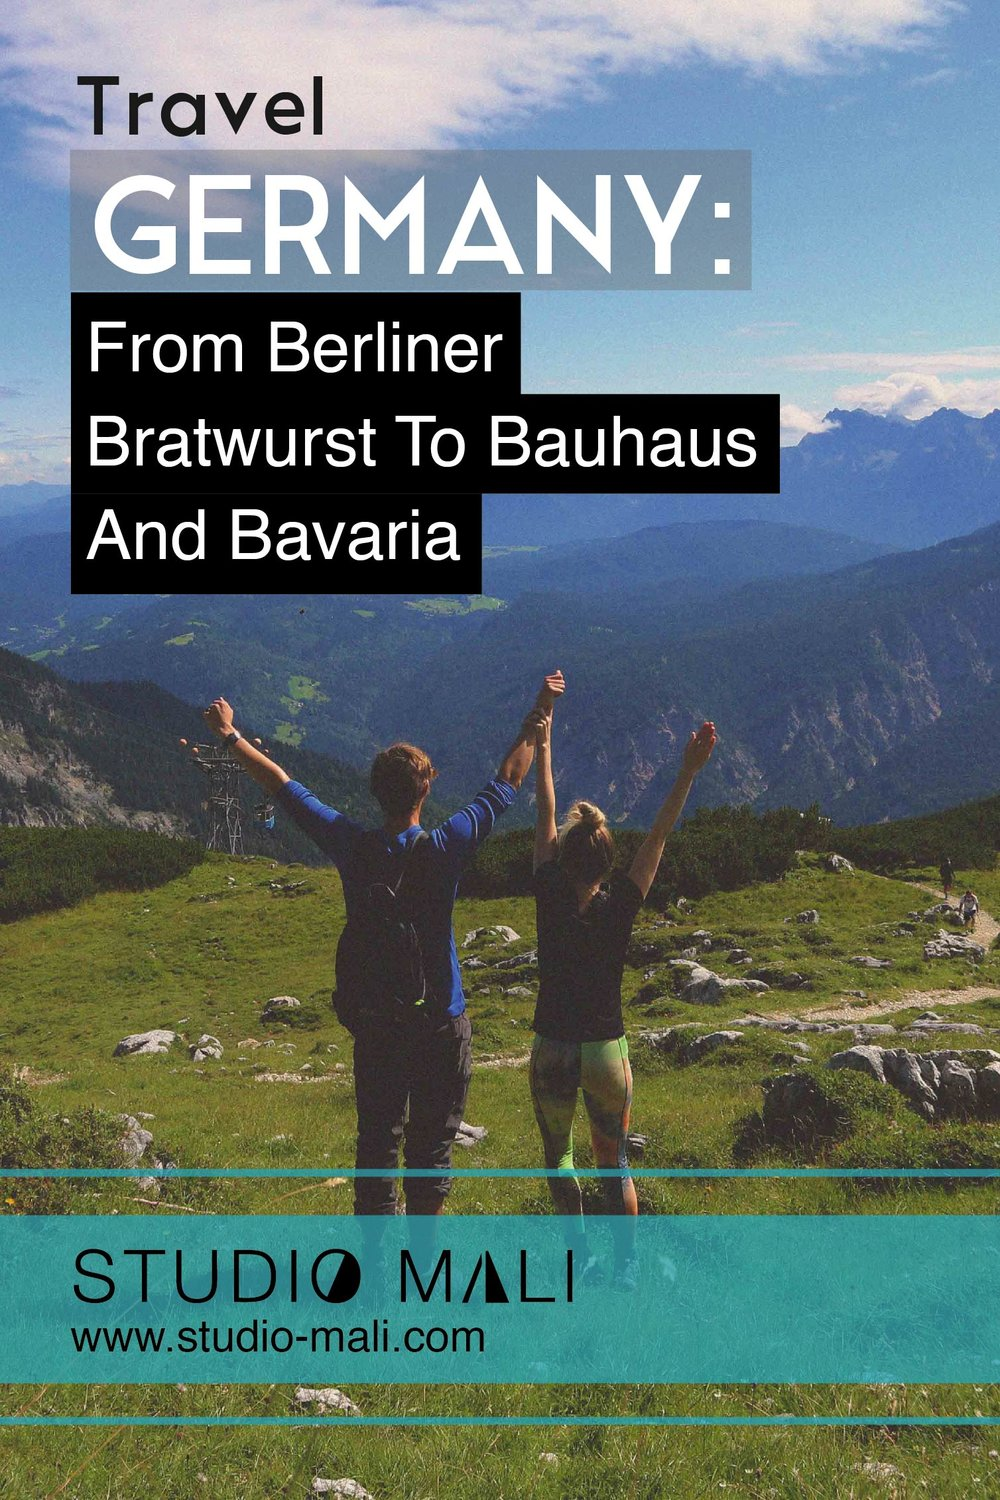 Germany - From Berliner Bratwurst To Bauhaus And Bavaria, by Studio Mali.jpg